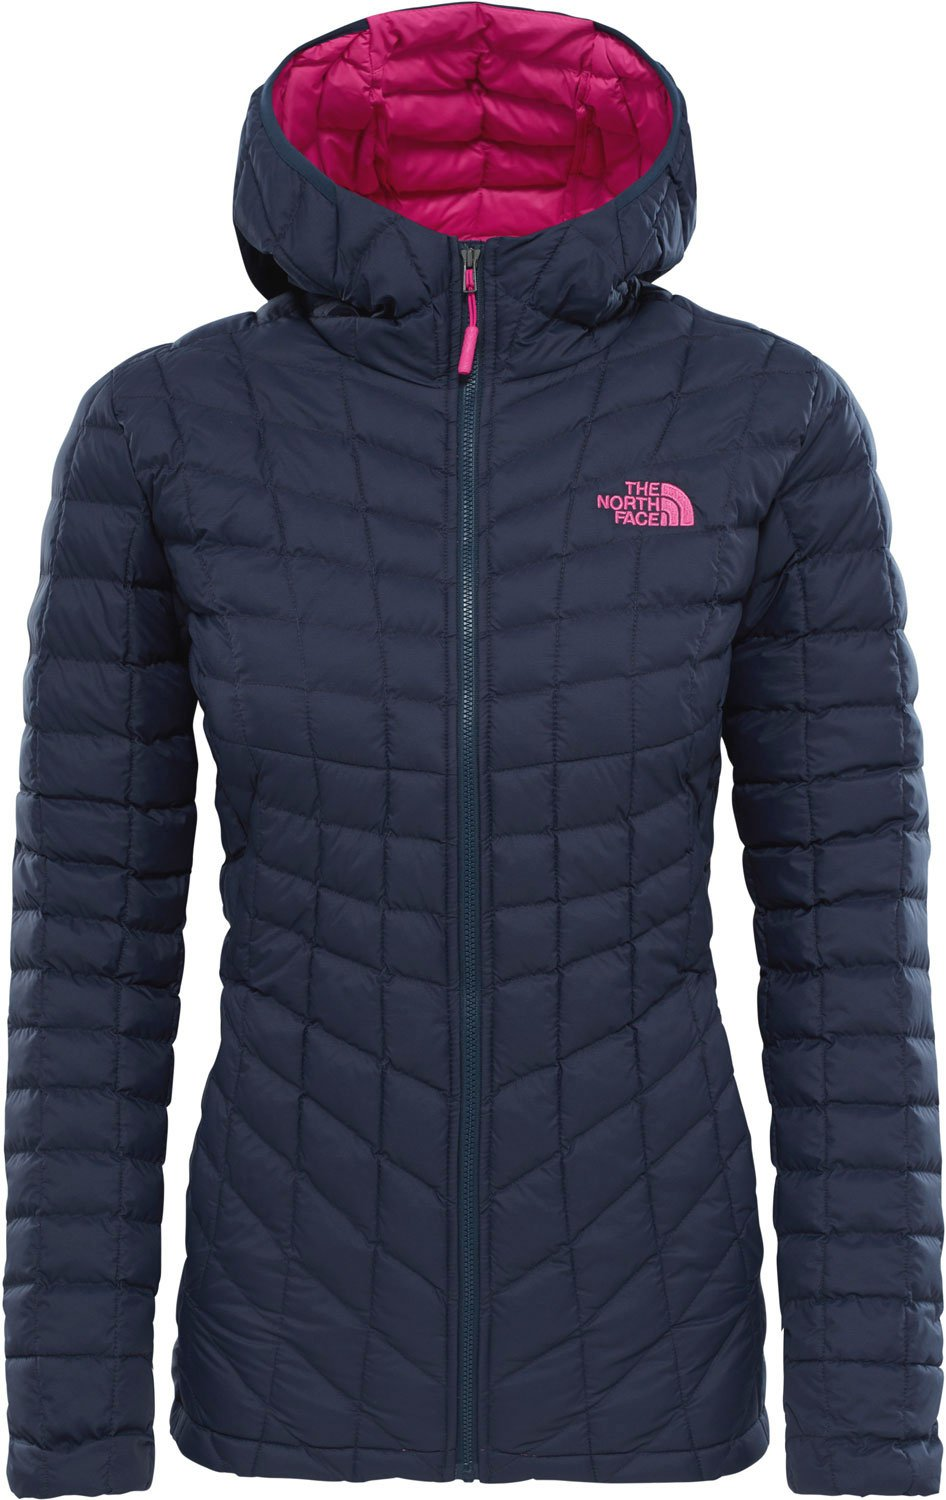 71swIv6QkOL - THE NORTH FACE Women's Thermoball Hoodie Jacket